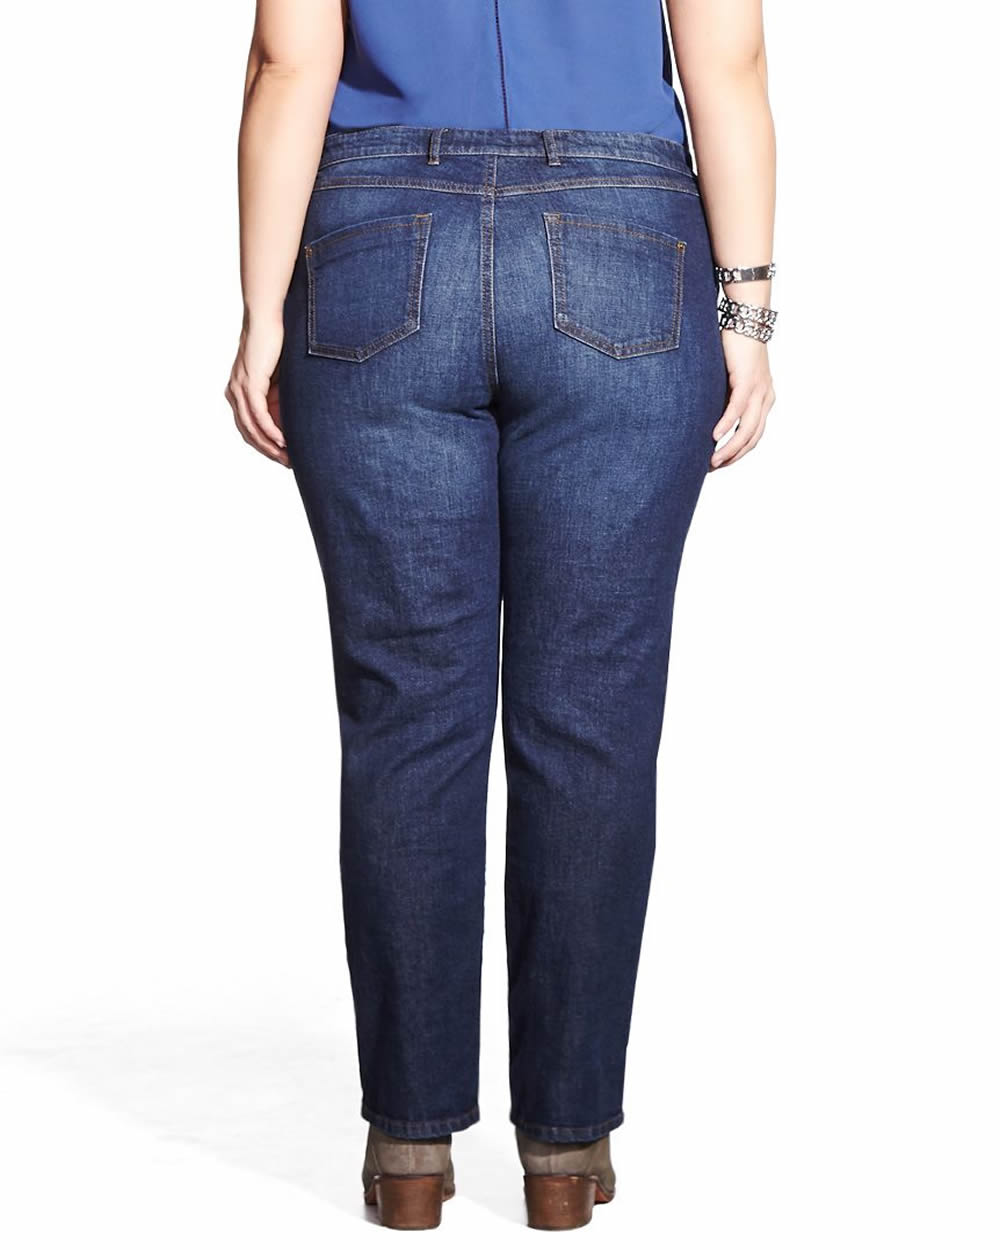 Find plus size boyfriend jeans at europegamexma.gq! From skinny styles to distressed denim, this boyfriend is totally a keeper.